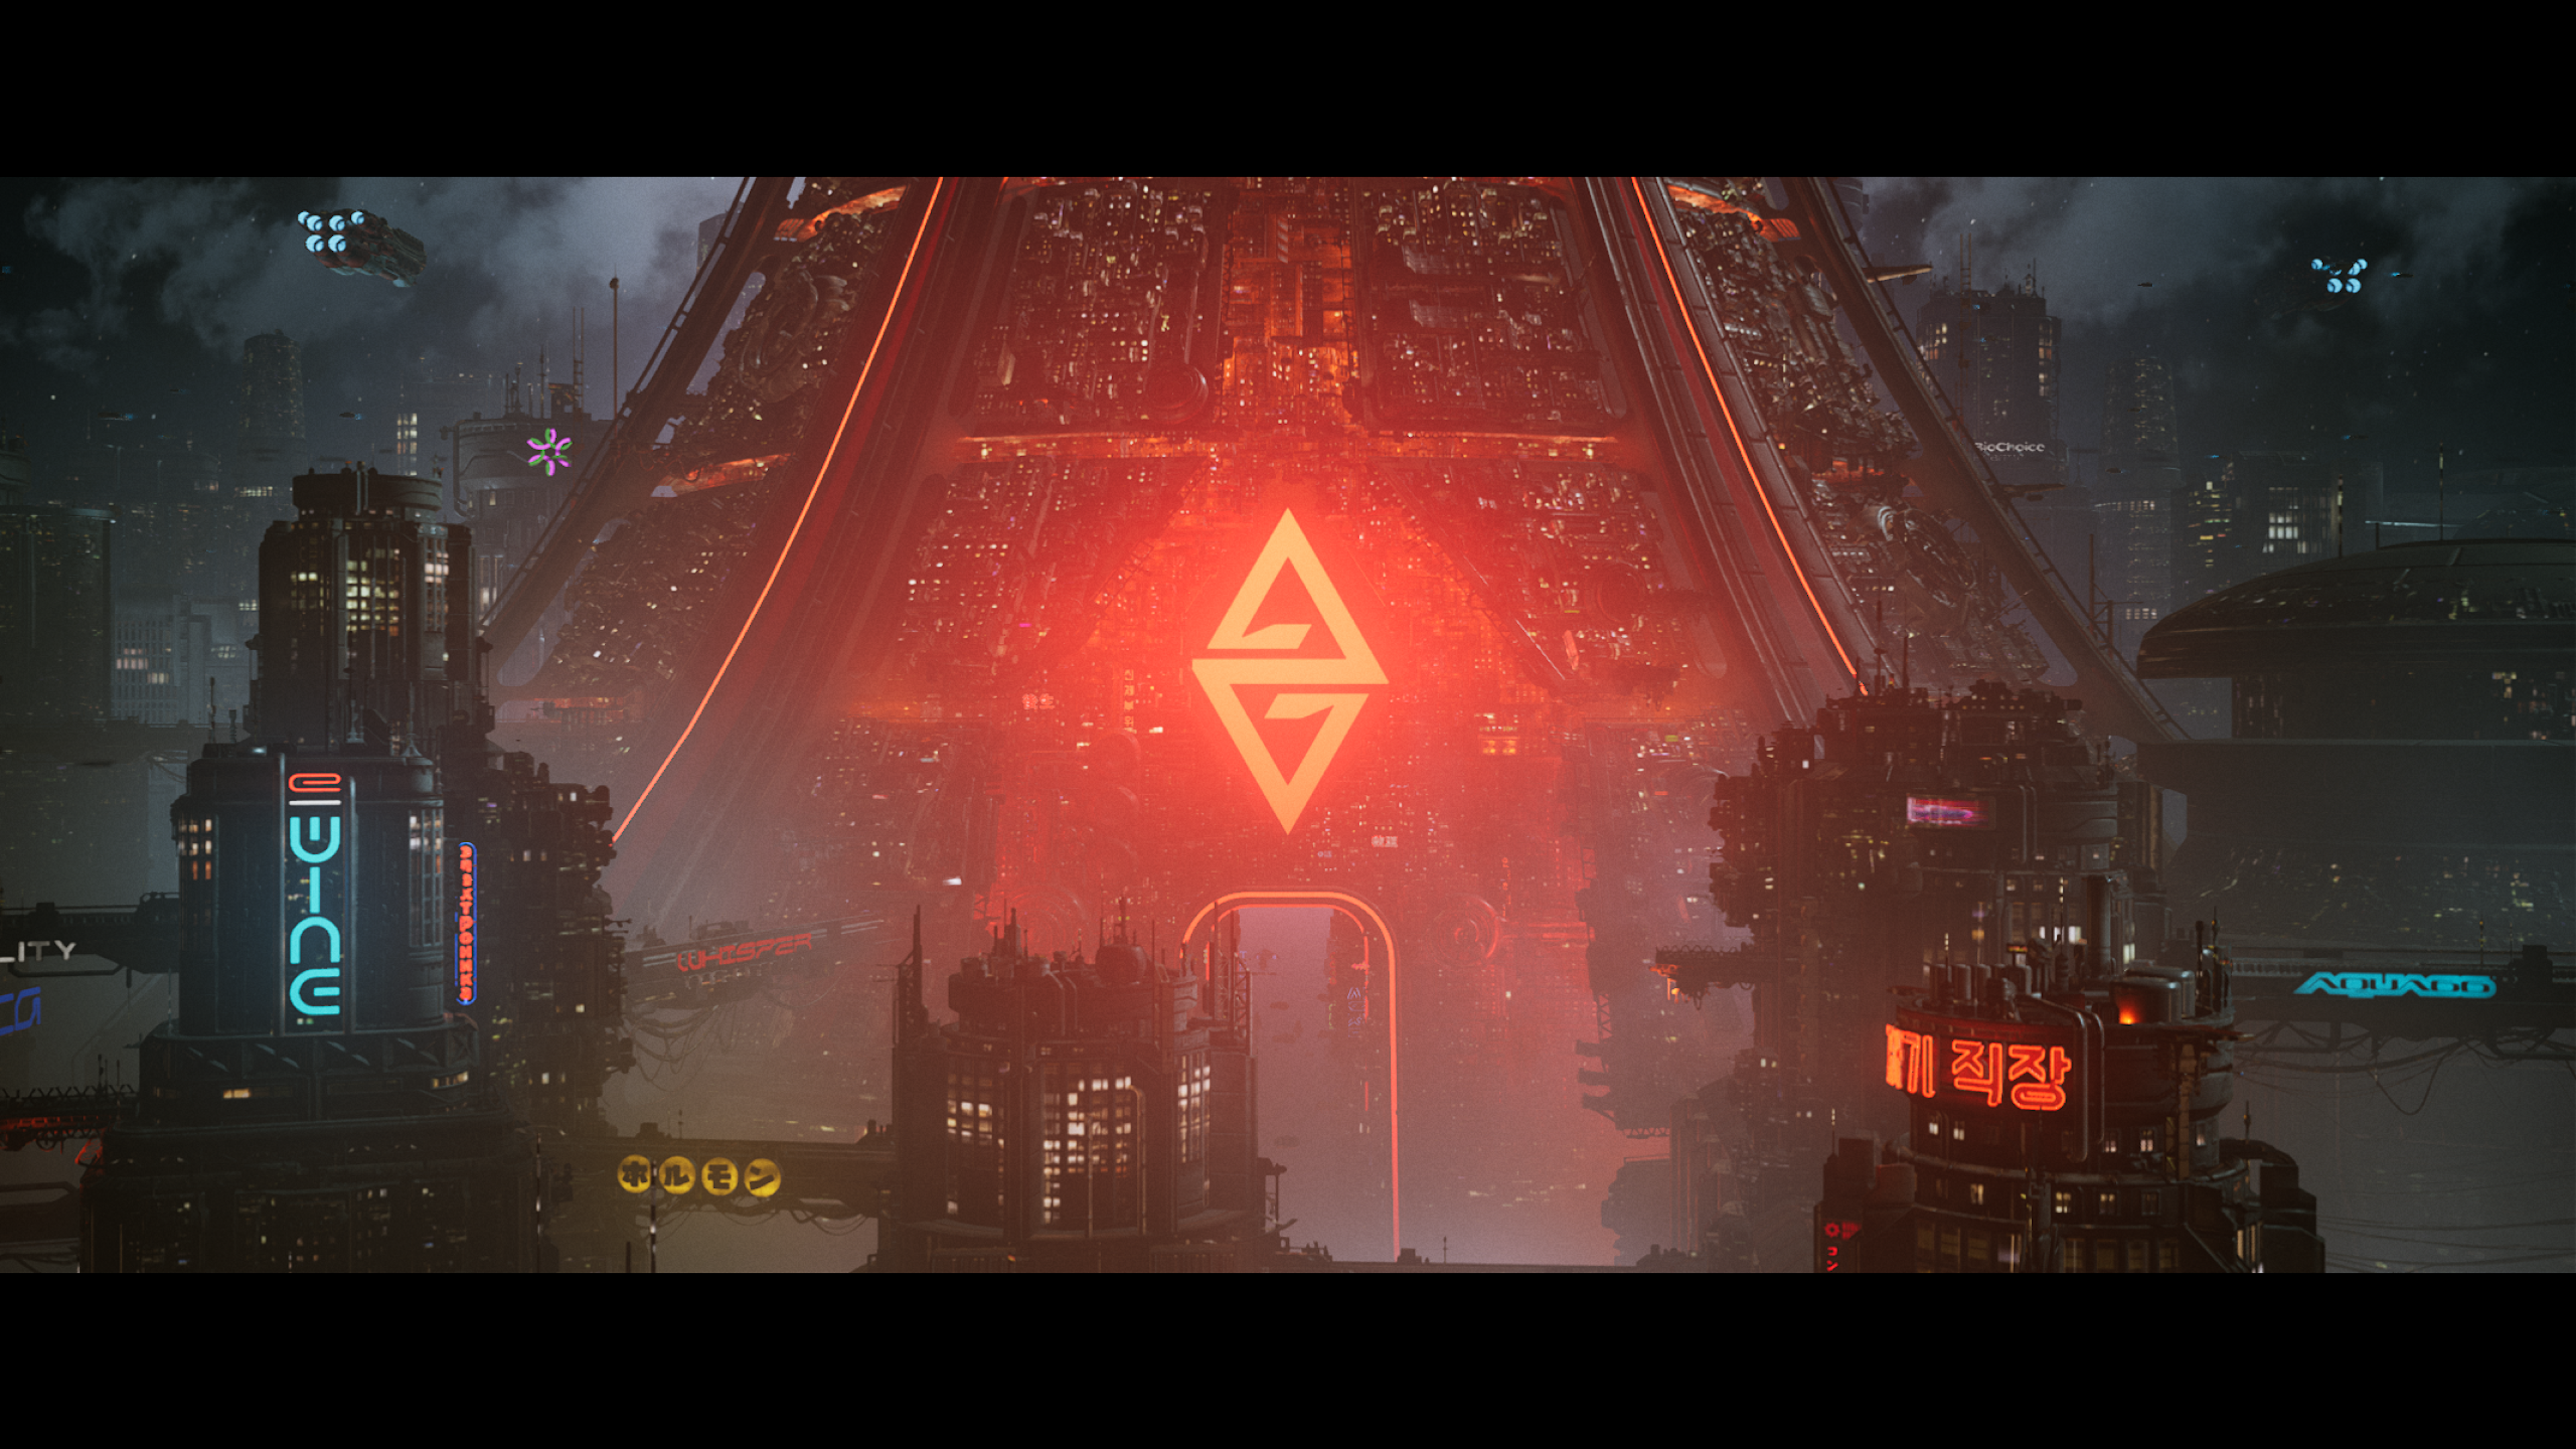 A cyberpunk tower glows red in The Ascent